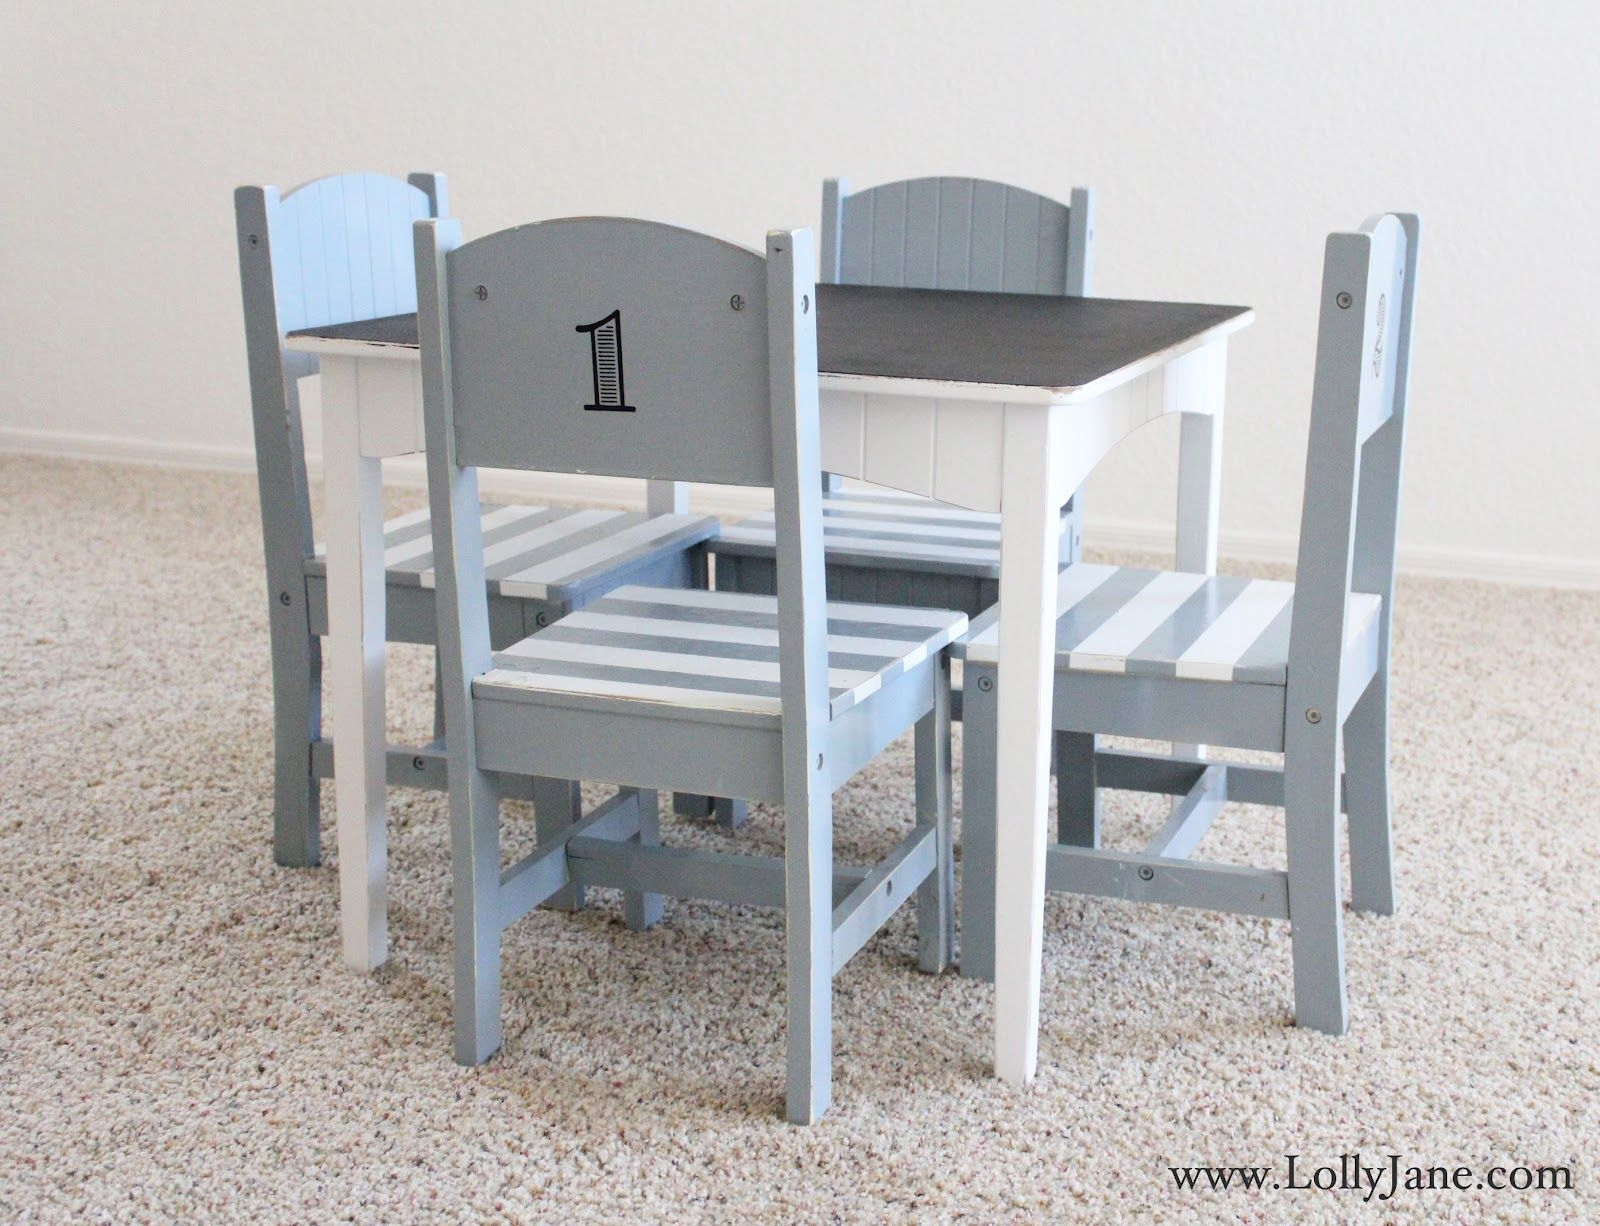 Kid Table And Chair Refurbished Kids Play Table Diy Update Furniture Kids Table